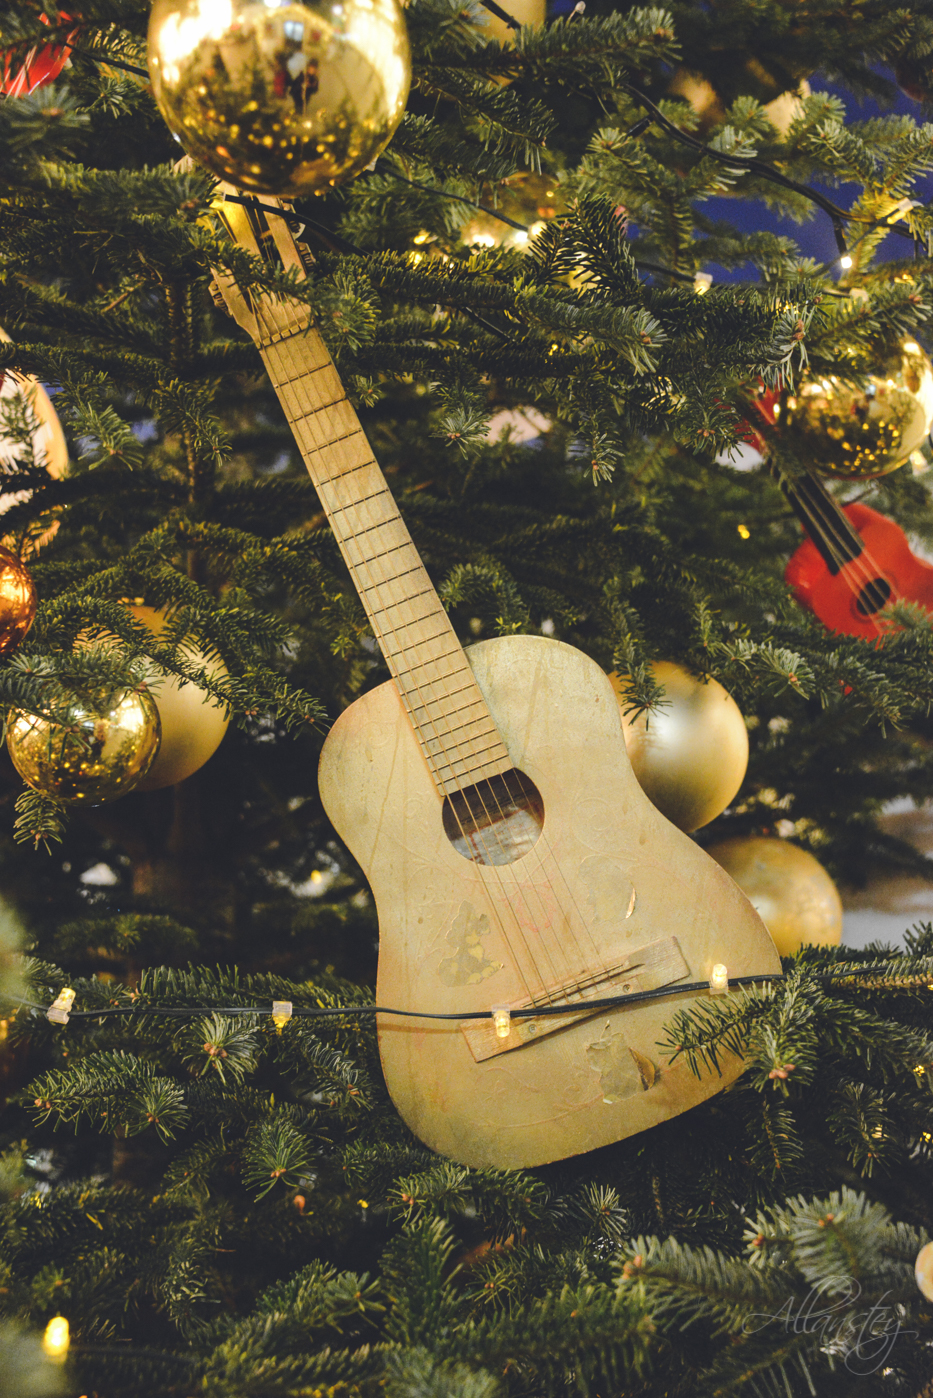 guitar Christmas tree decoration